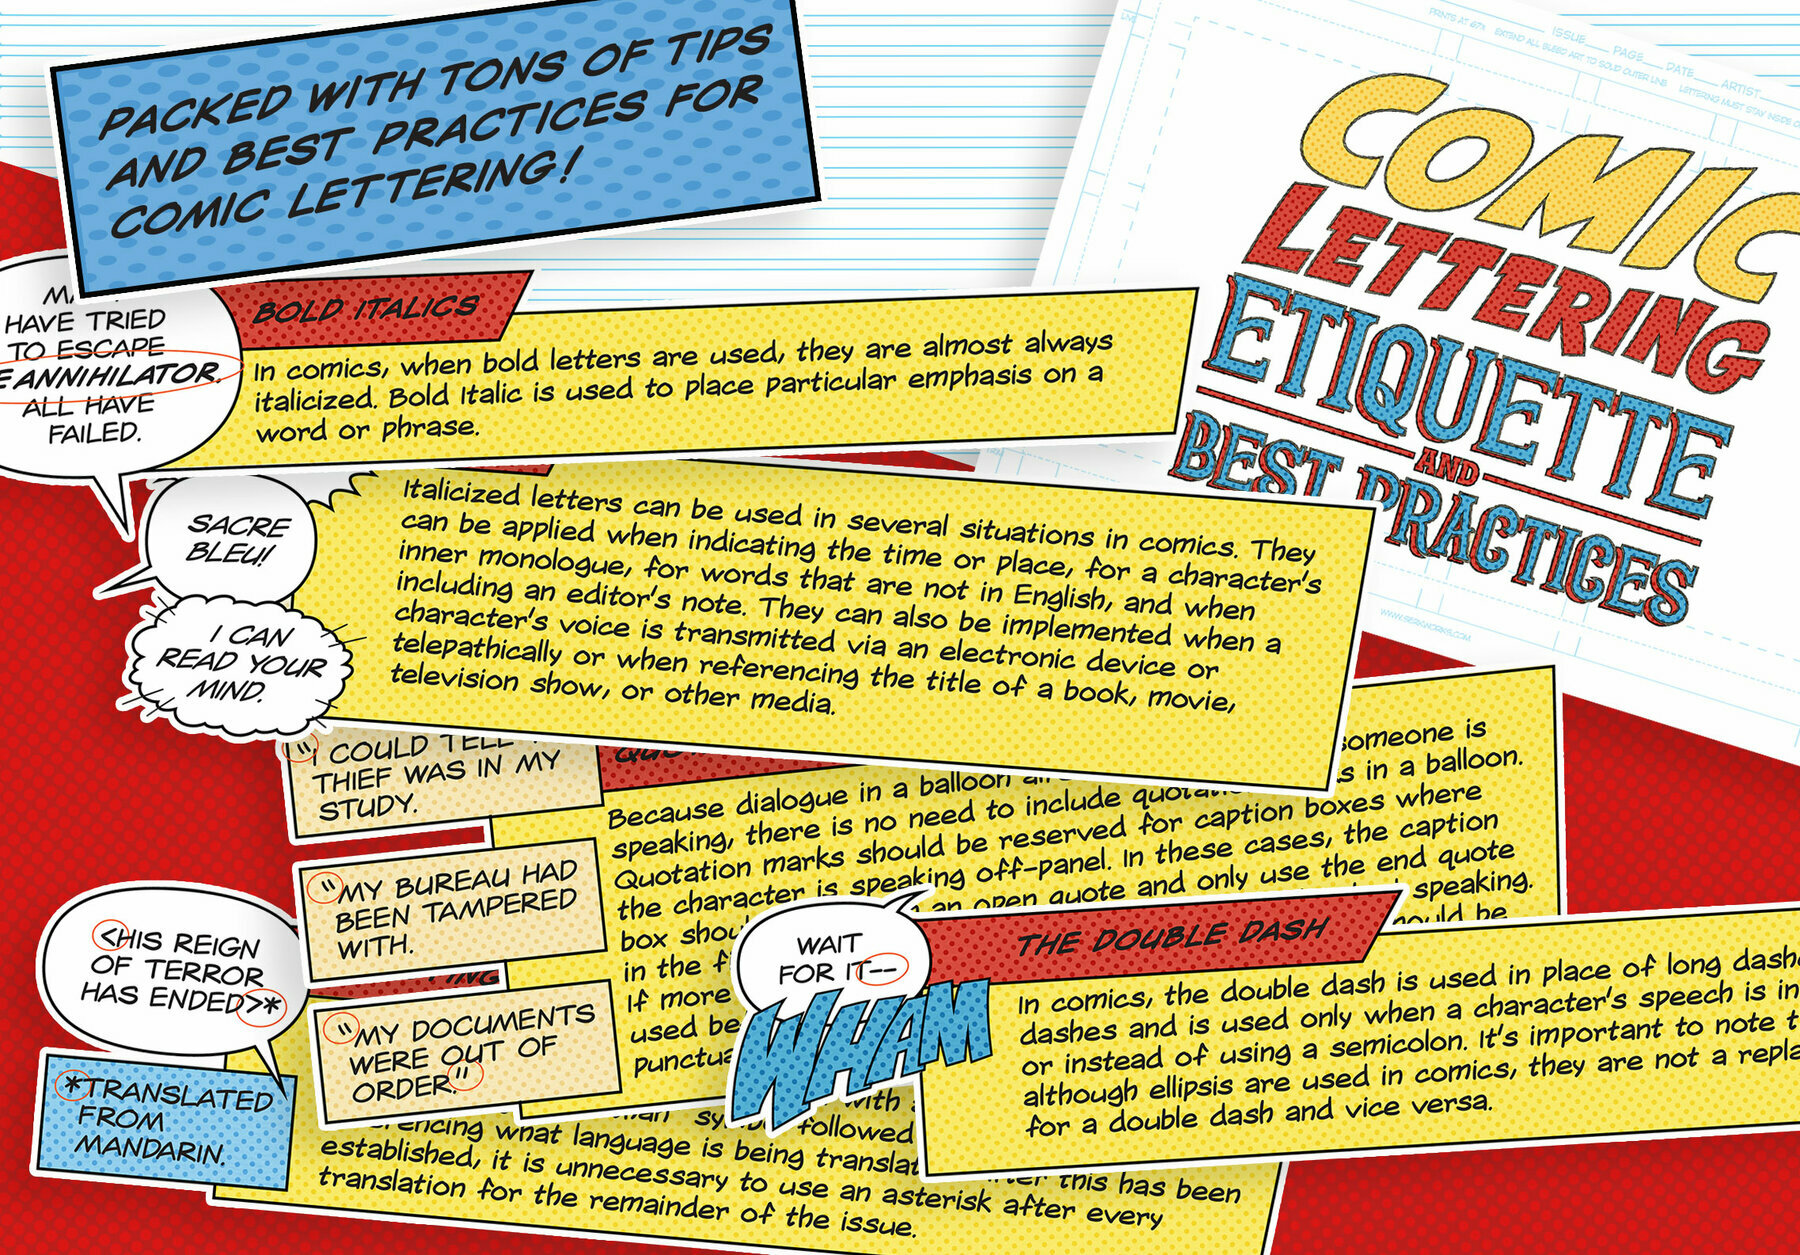 The Comic Lettering Masterclass for Photoshop and Illustrator